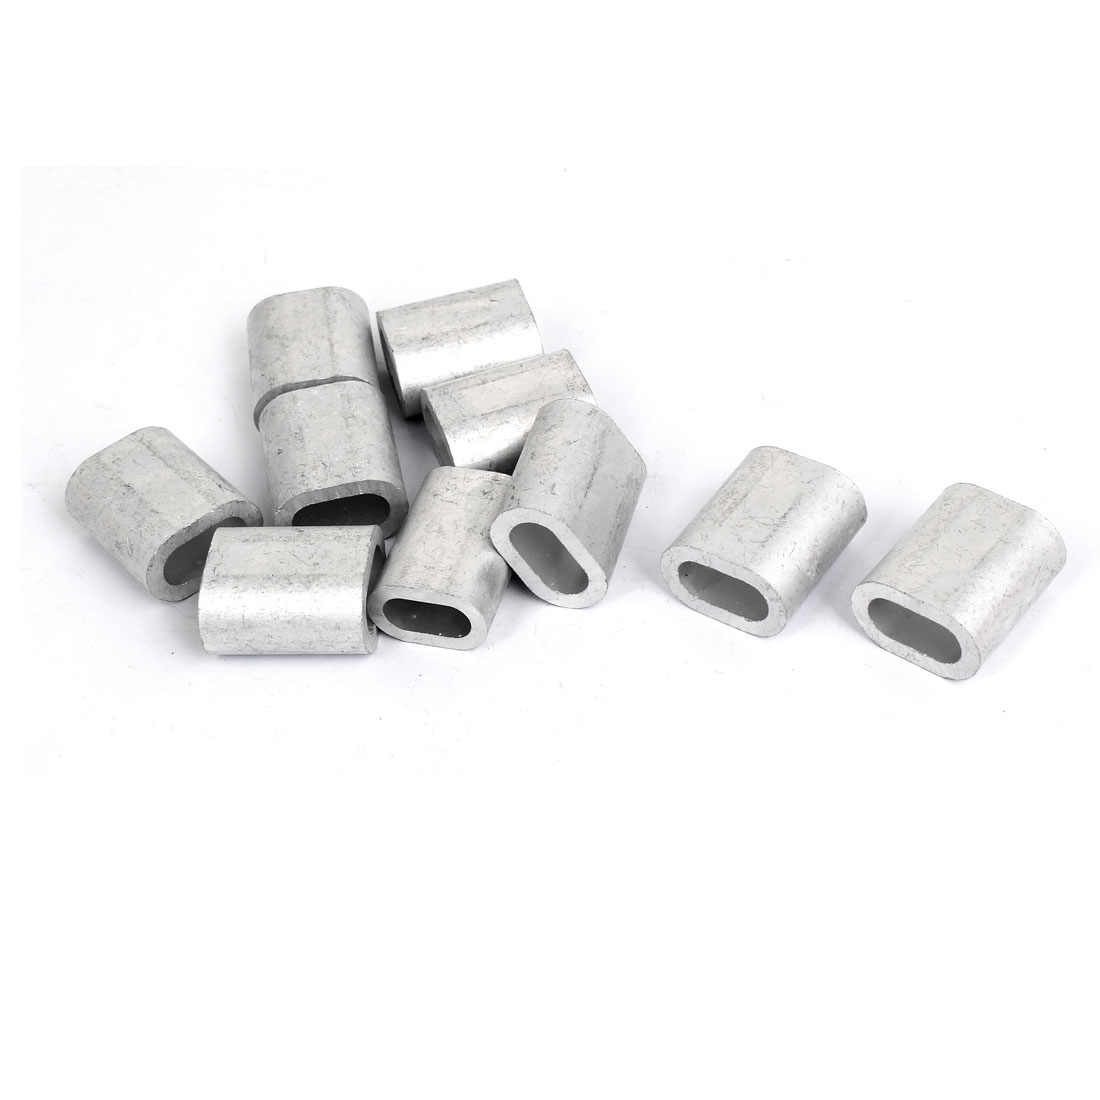 "8mm 5/16"" Steel Wire Rope Aluminum Ferrules Sleeves Silver Tone 10pcs"